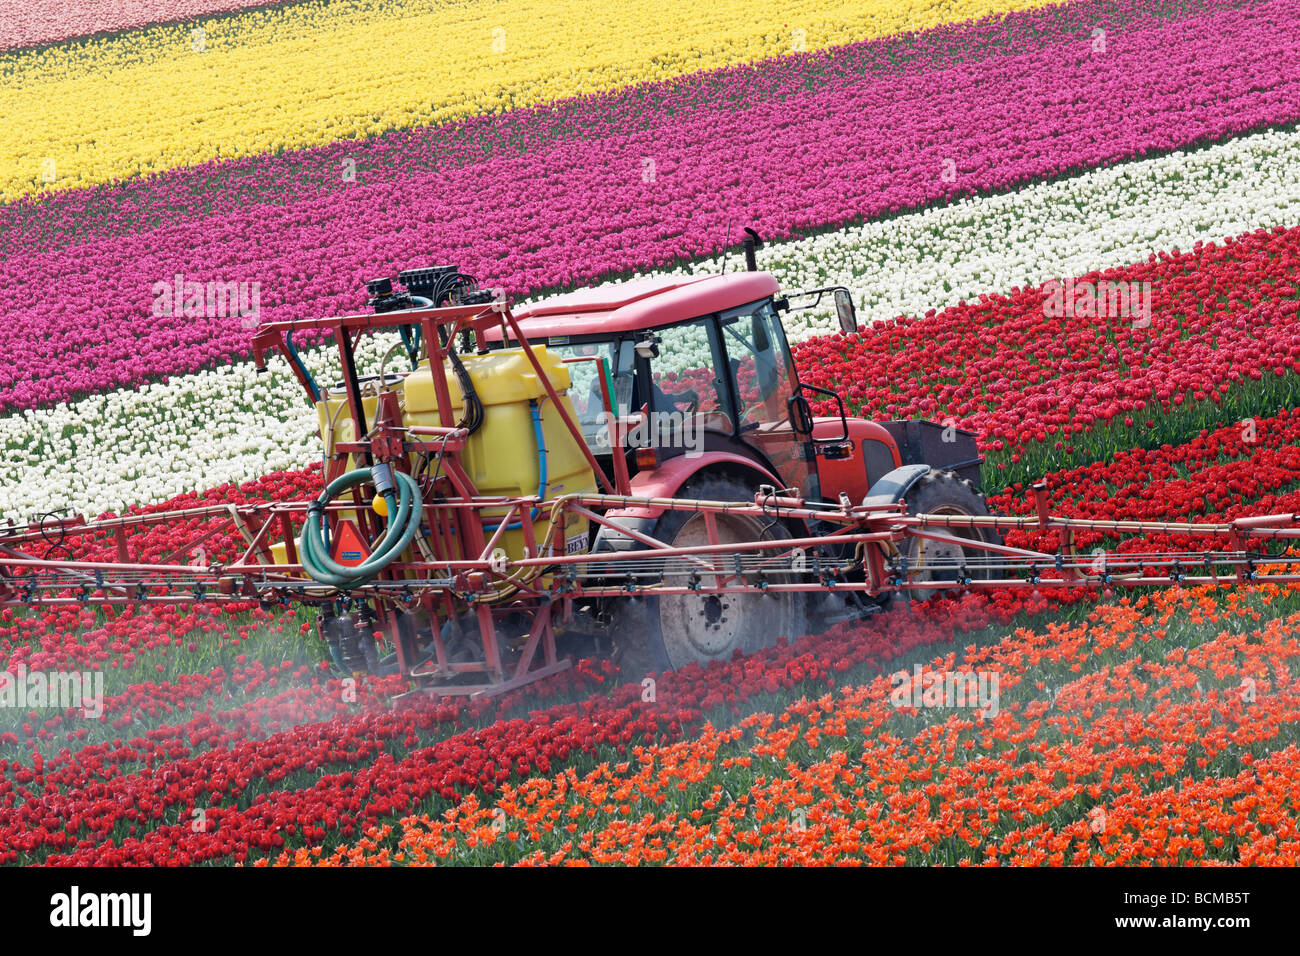 Tractor spraying tulips in North Holland, Netherlands. - Stock Image